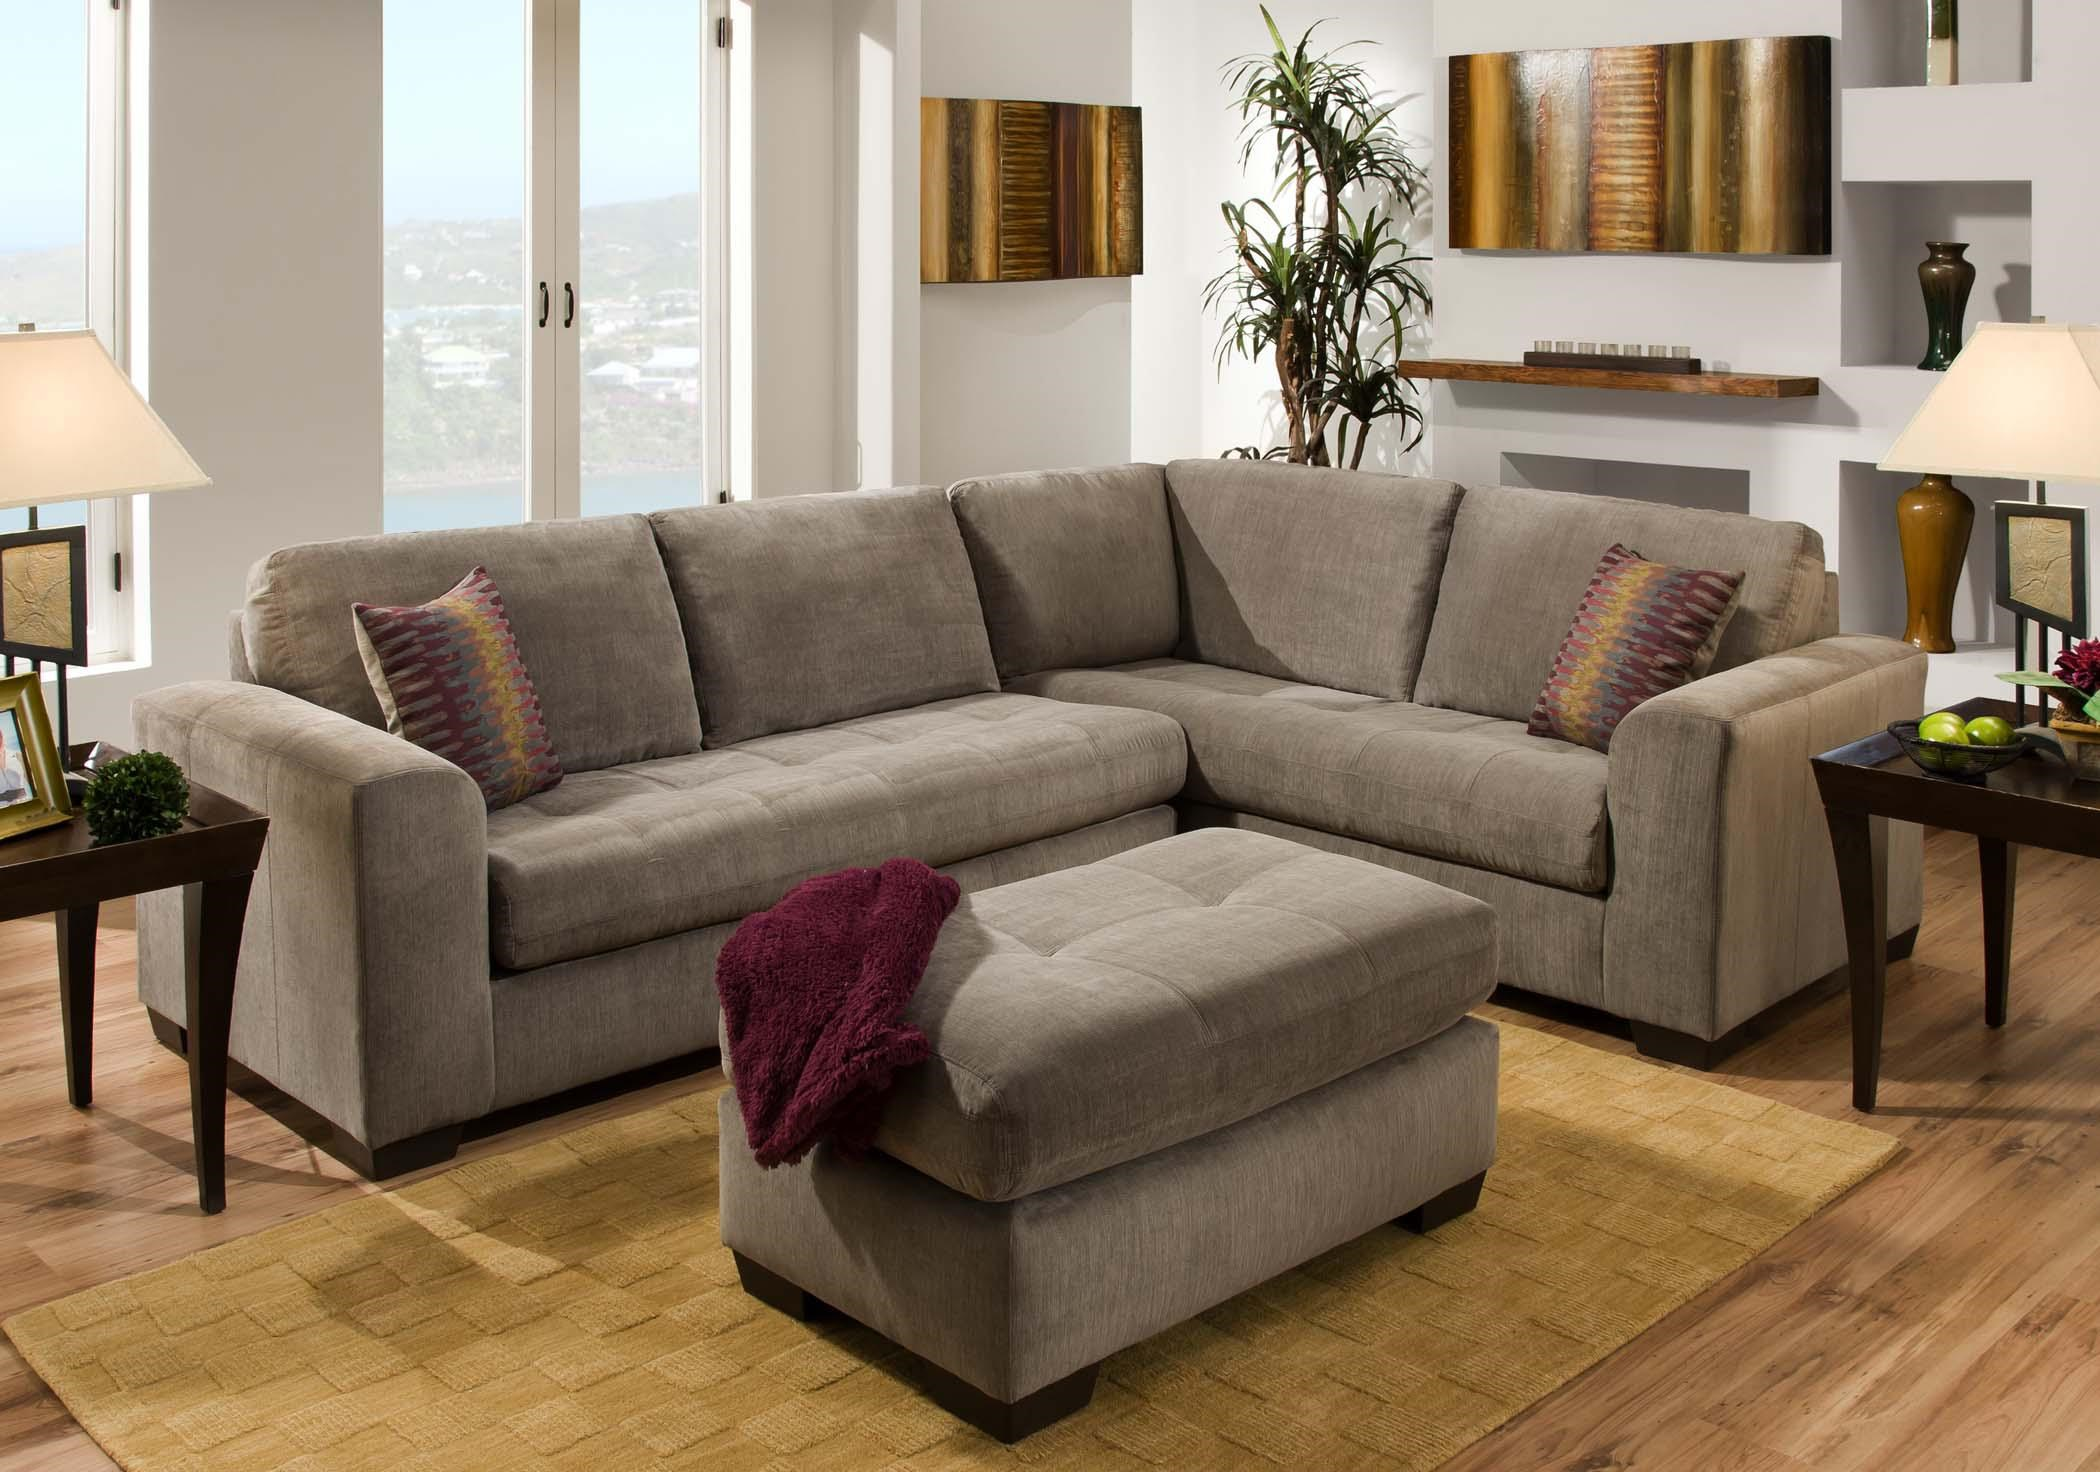 American Furniture 1230 Contemporary Sectional Sofa with Corner Construction : american furniture sectional - Sectionals, Sofas & Couches